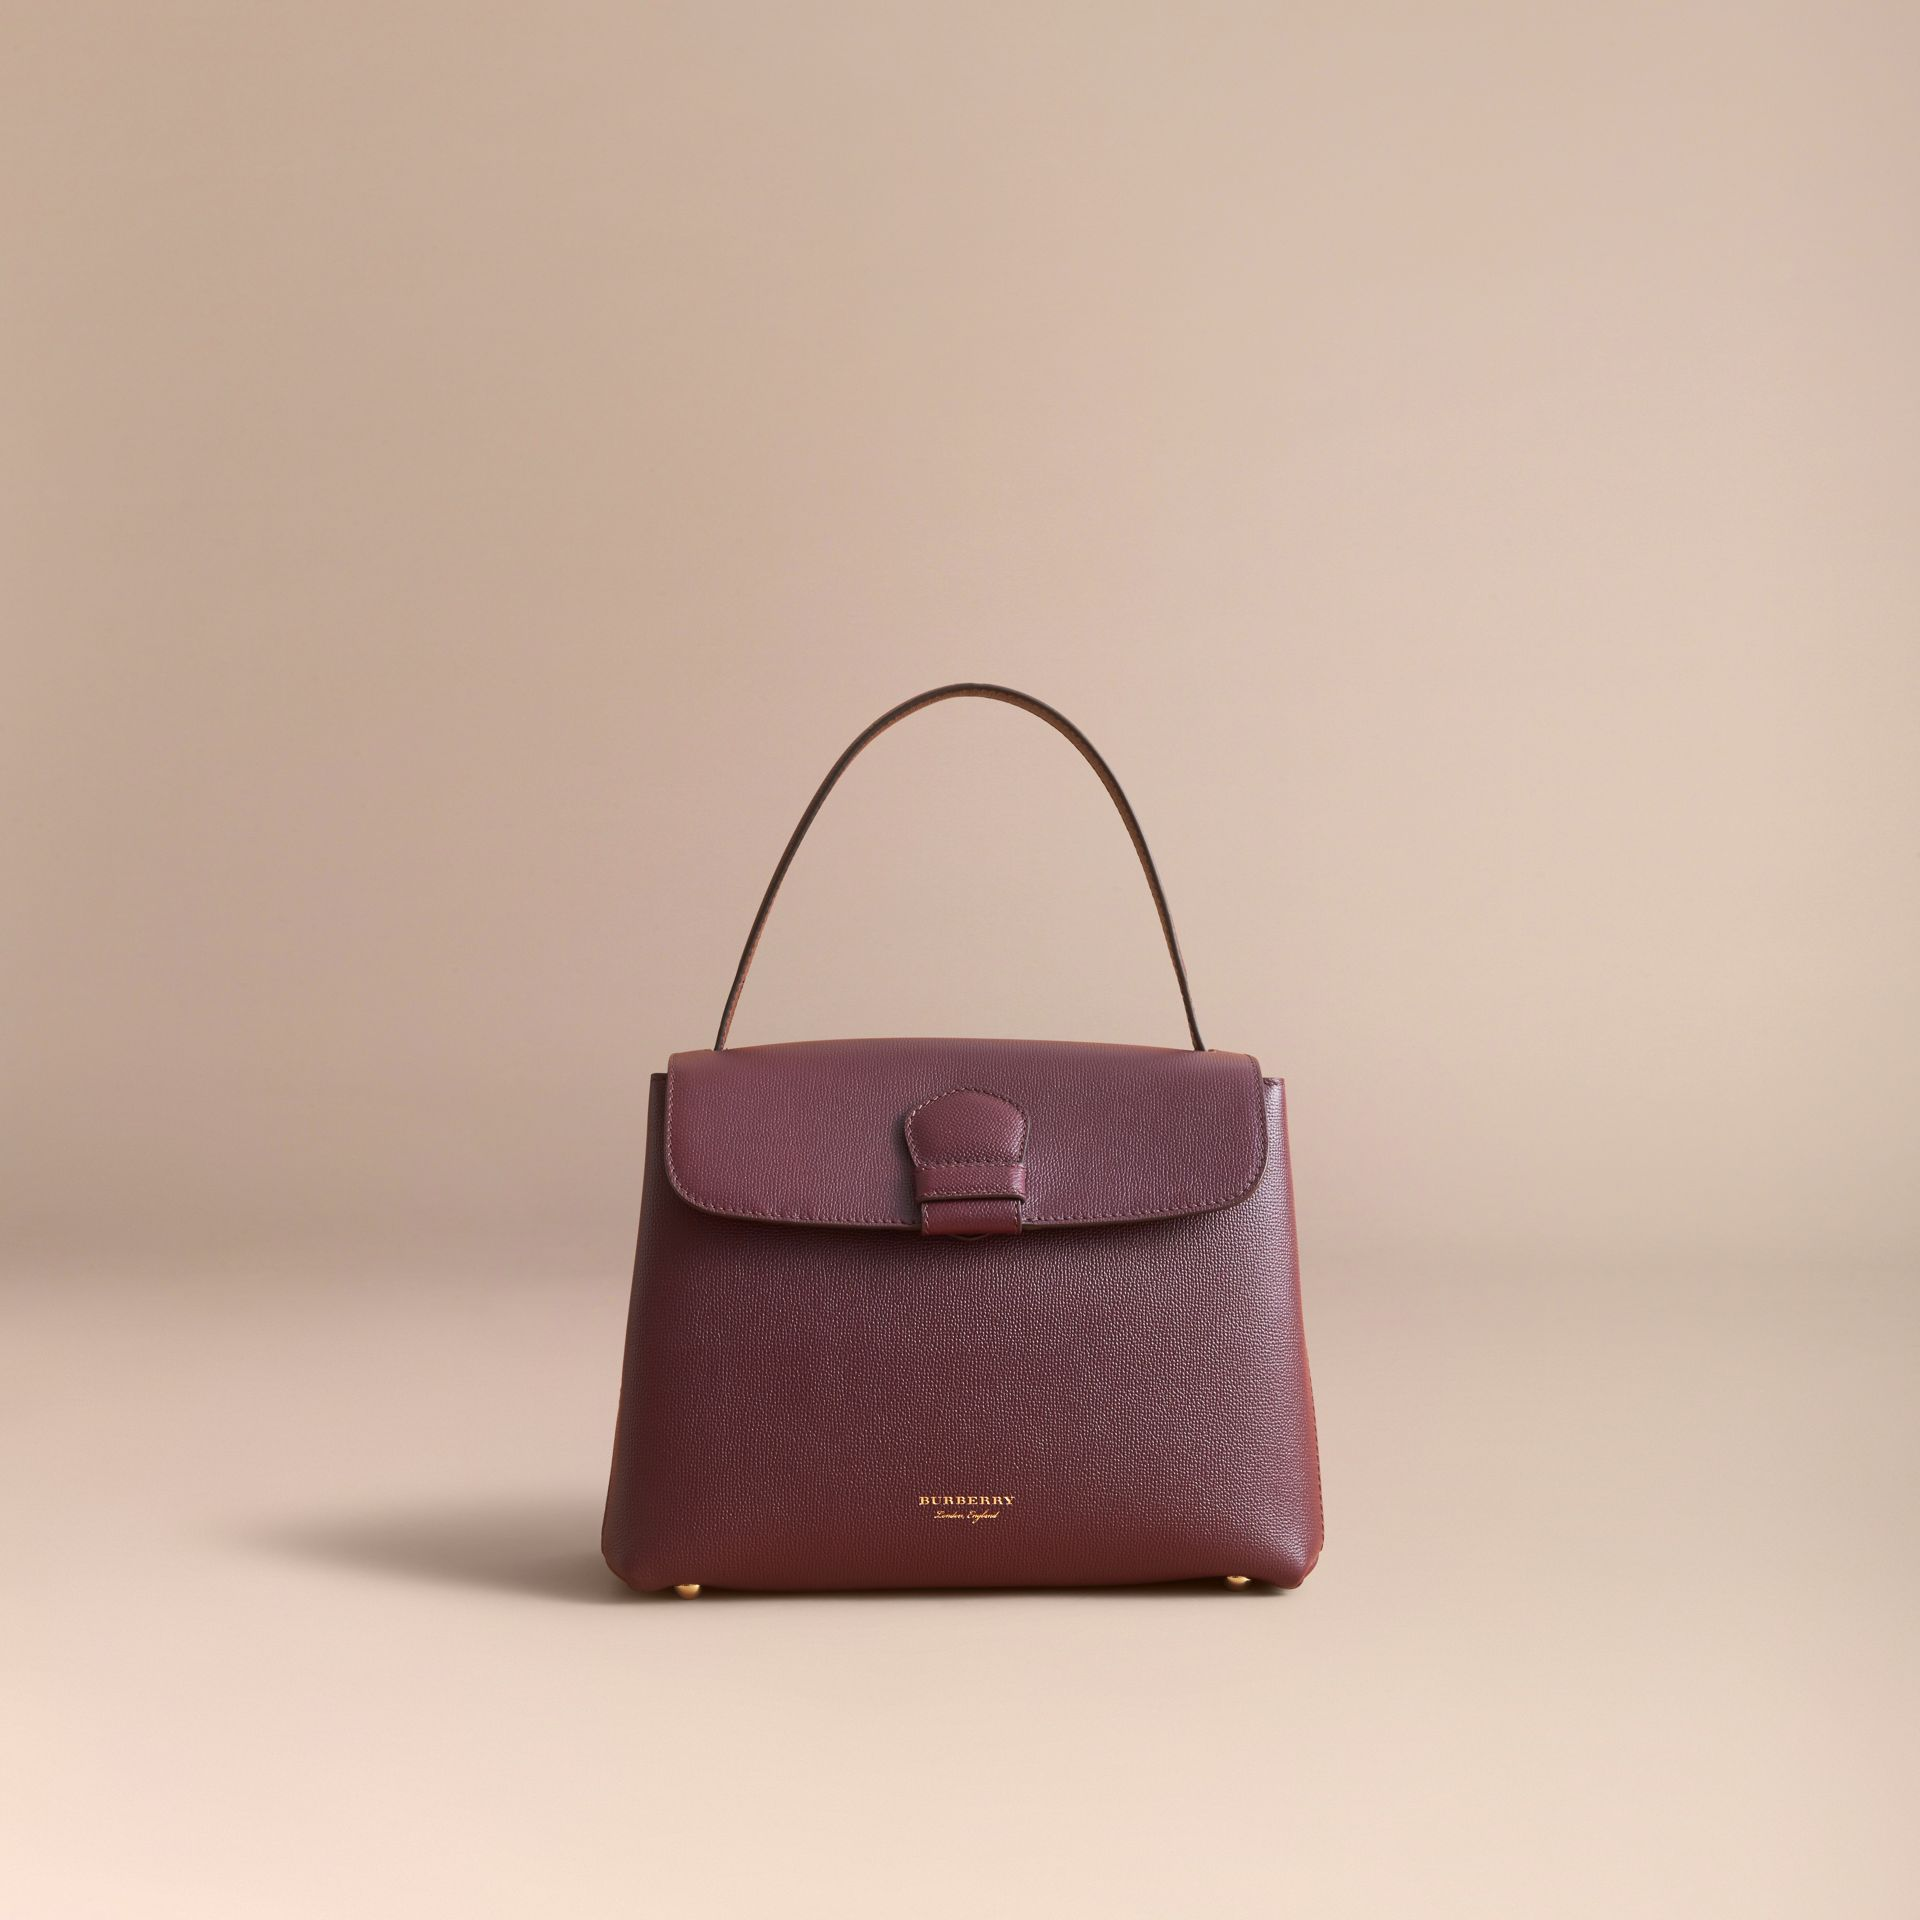 Medium Grainy Leather and House Check Tote Bag in Mahogany Red - Women | Burberry Singapore - gallery image 8